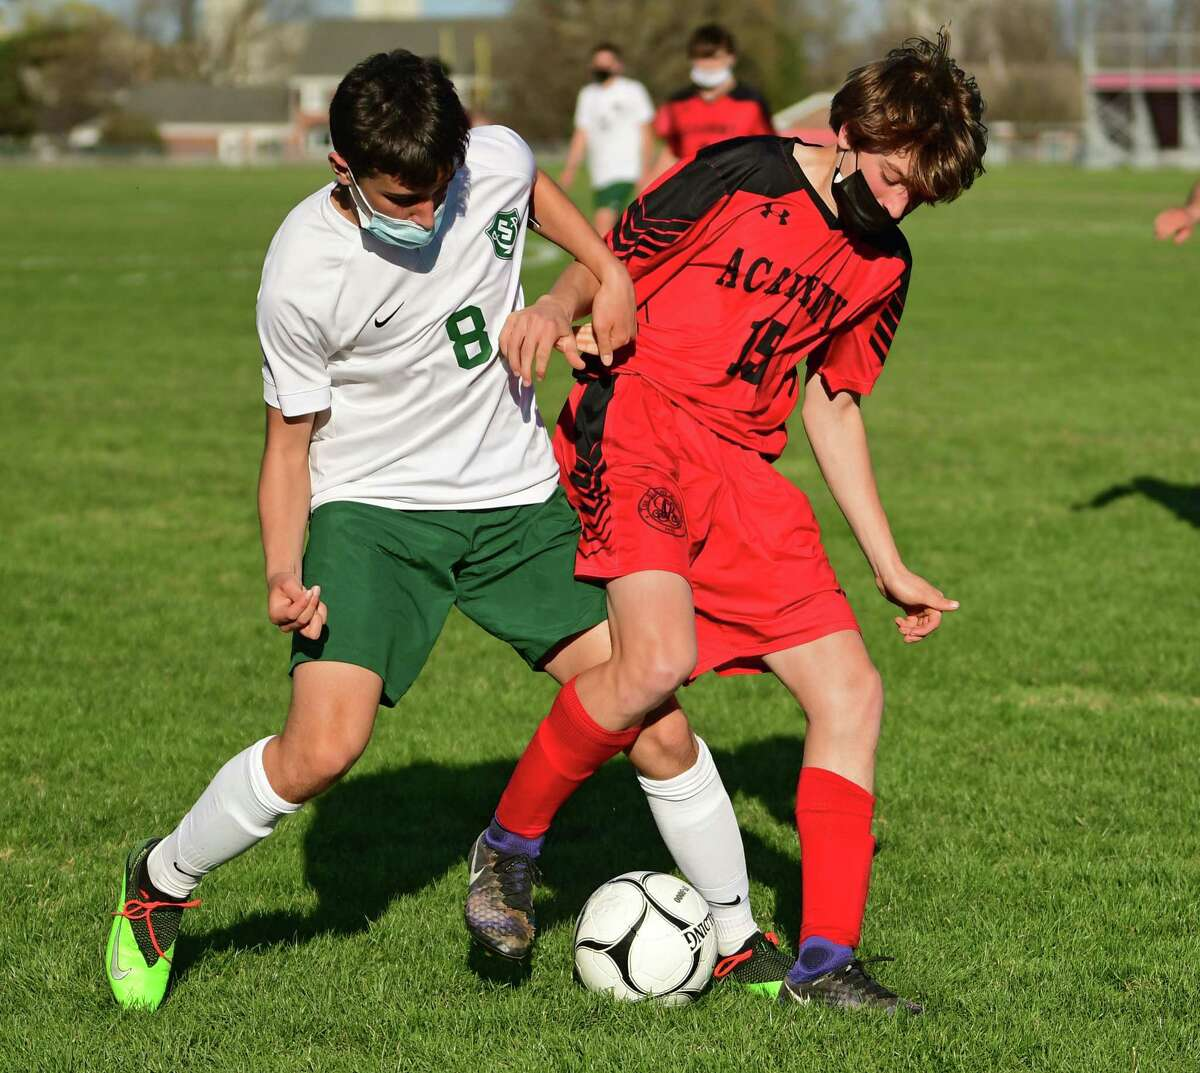 Schalmont's Andrew Kusek, left, and Albany Academy's Tommy McGuire battle for the ball in a game last season. Kusek scored nine goals in two games in the week running from Sept. 6-12 to earn Athlete of the Week honors.